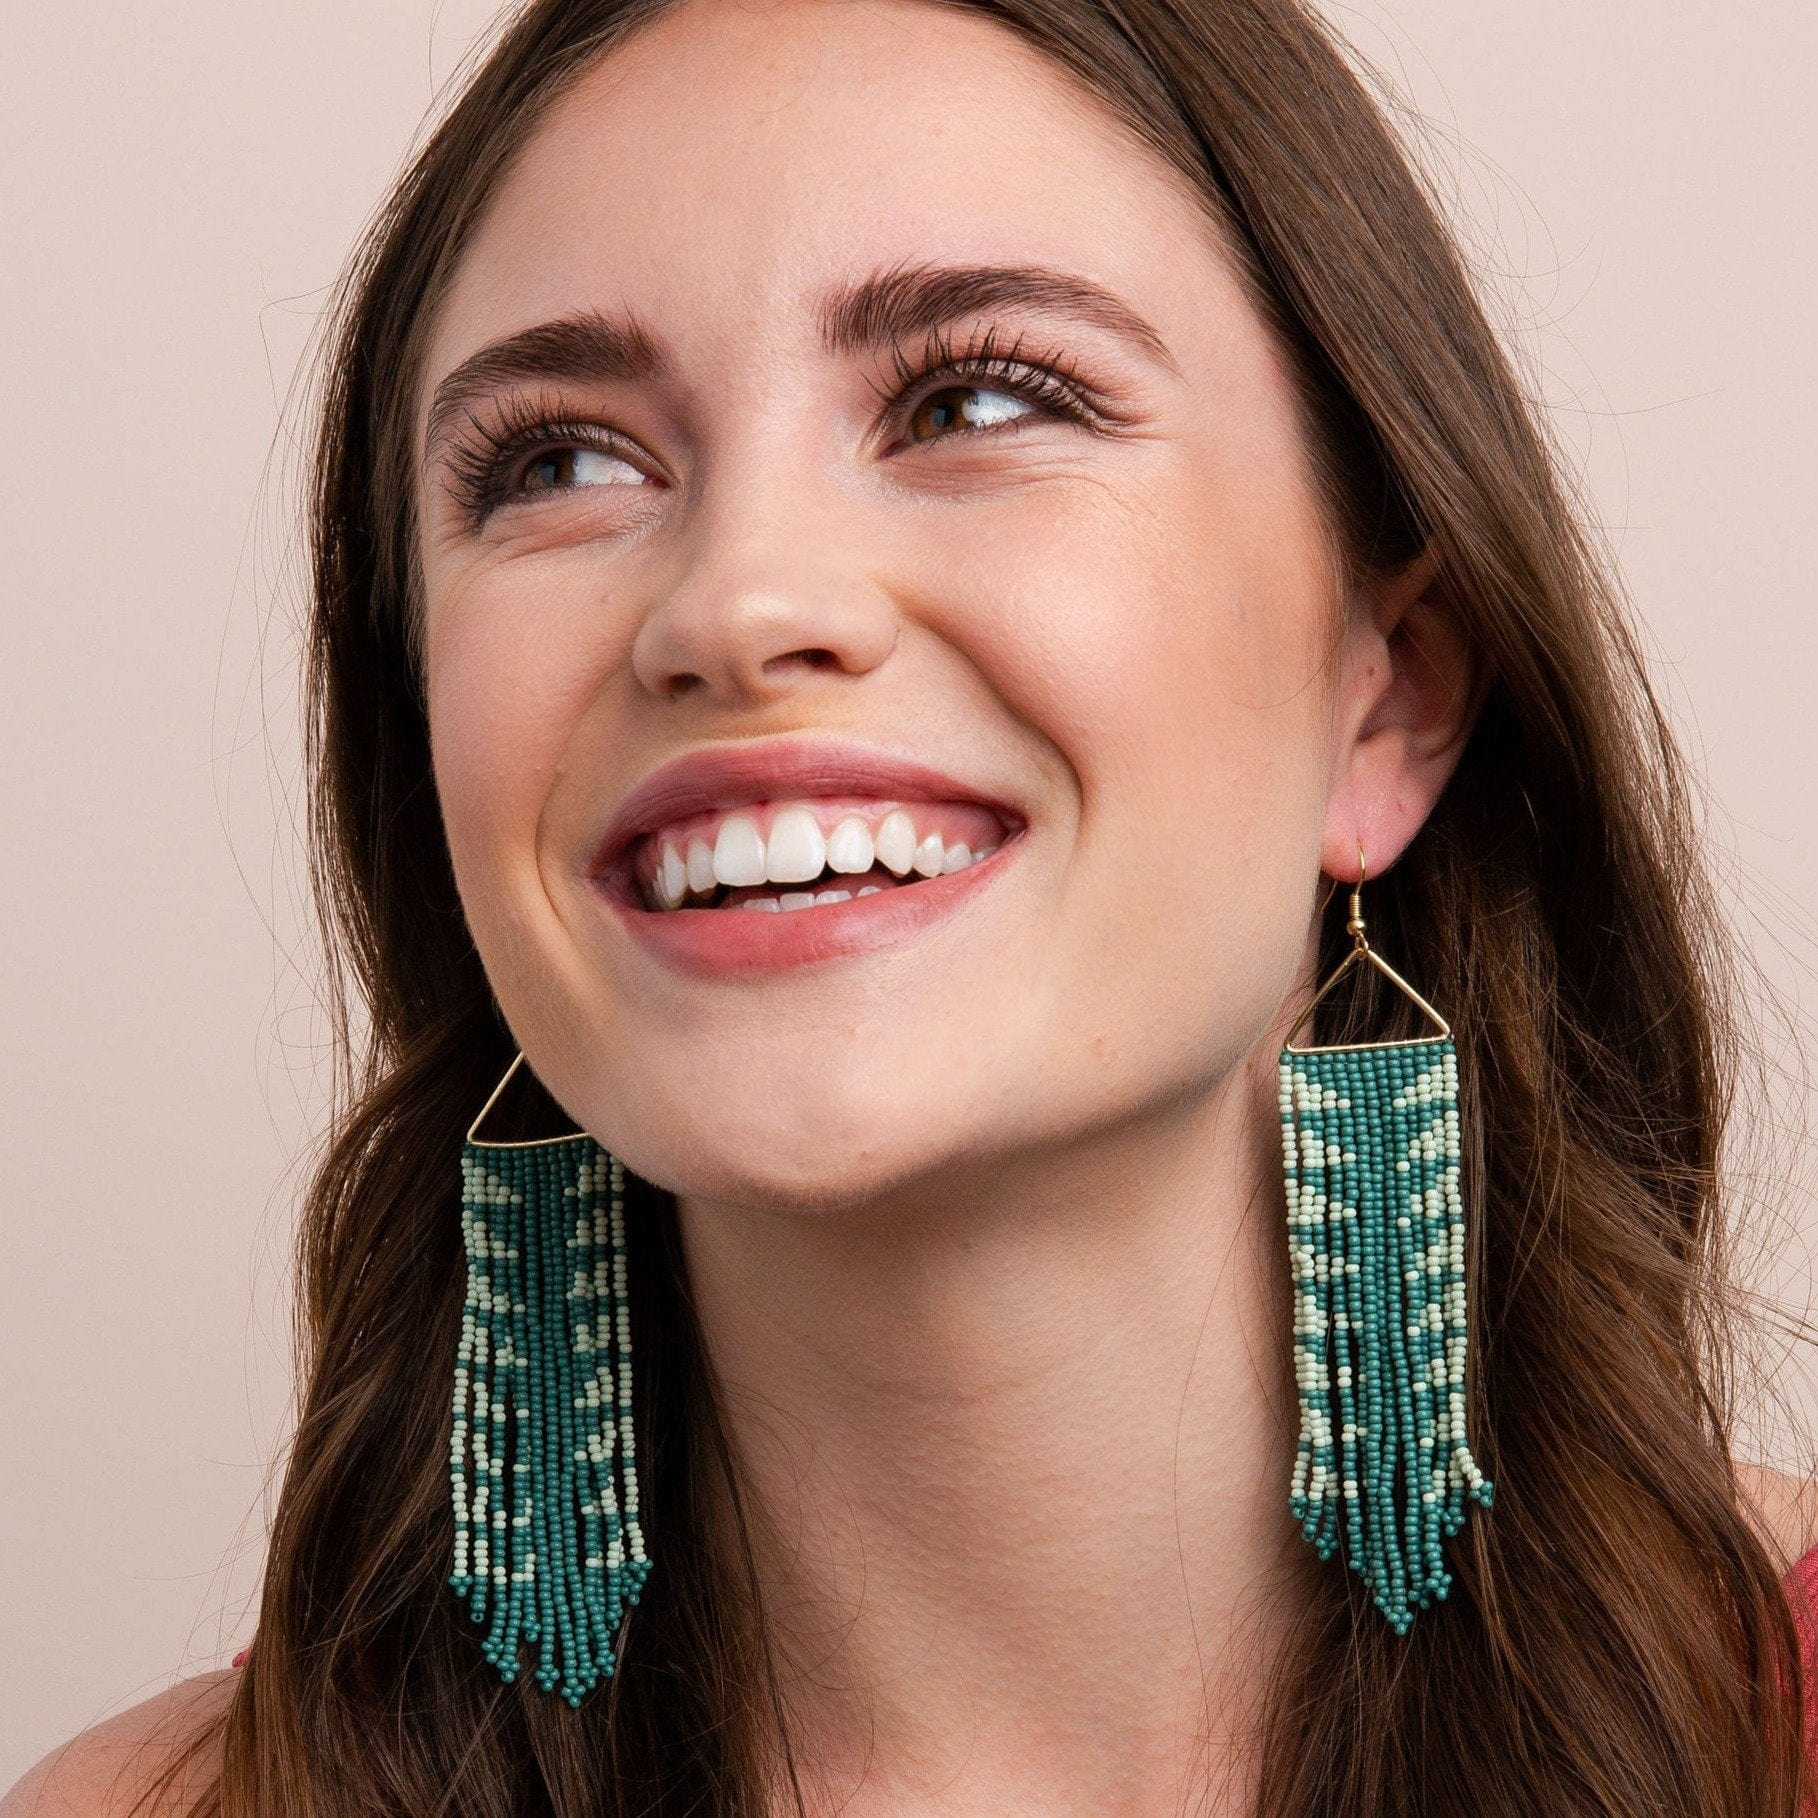 Teal And Mint Arrow Fringe Earring